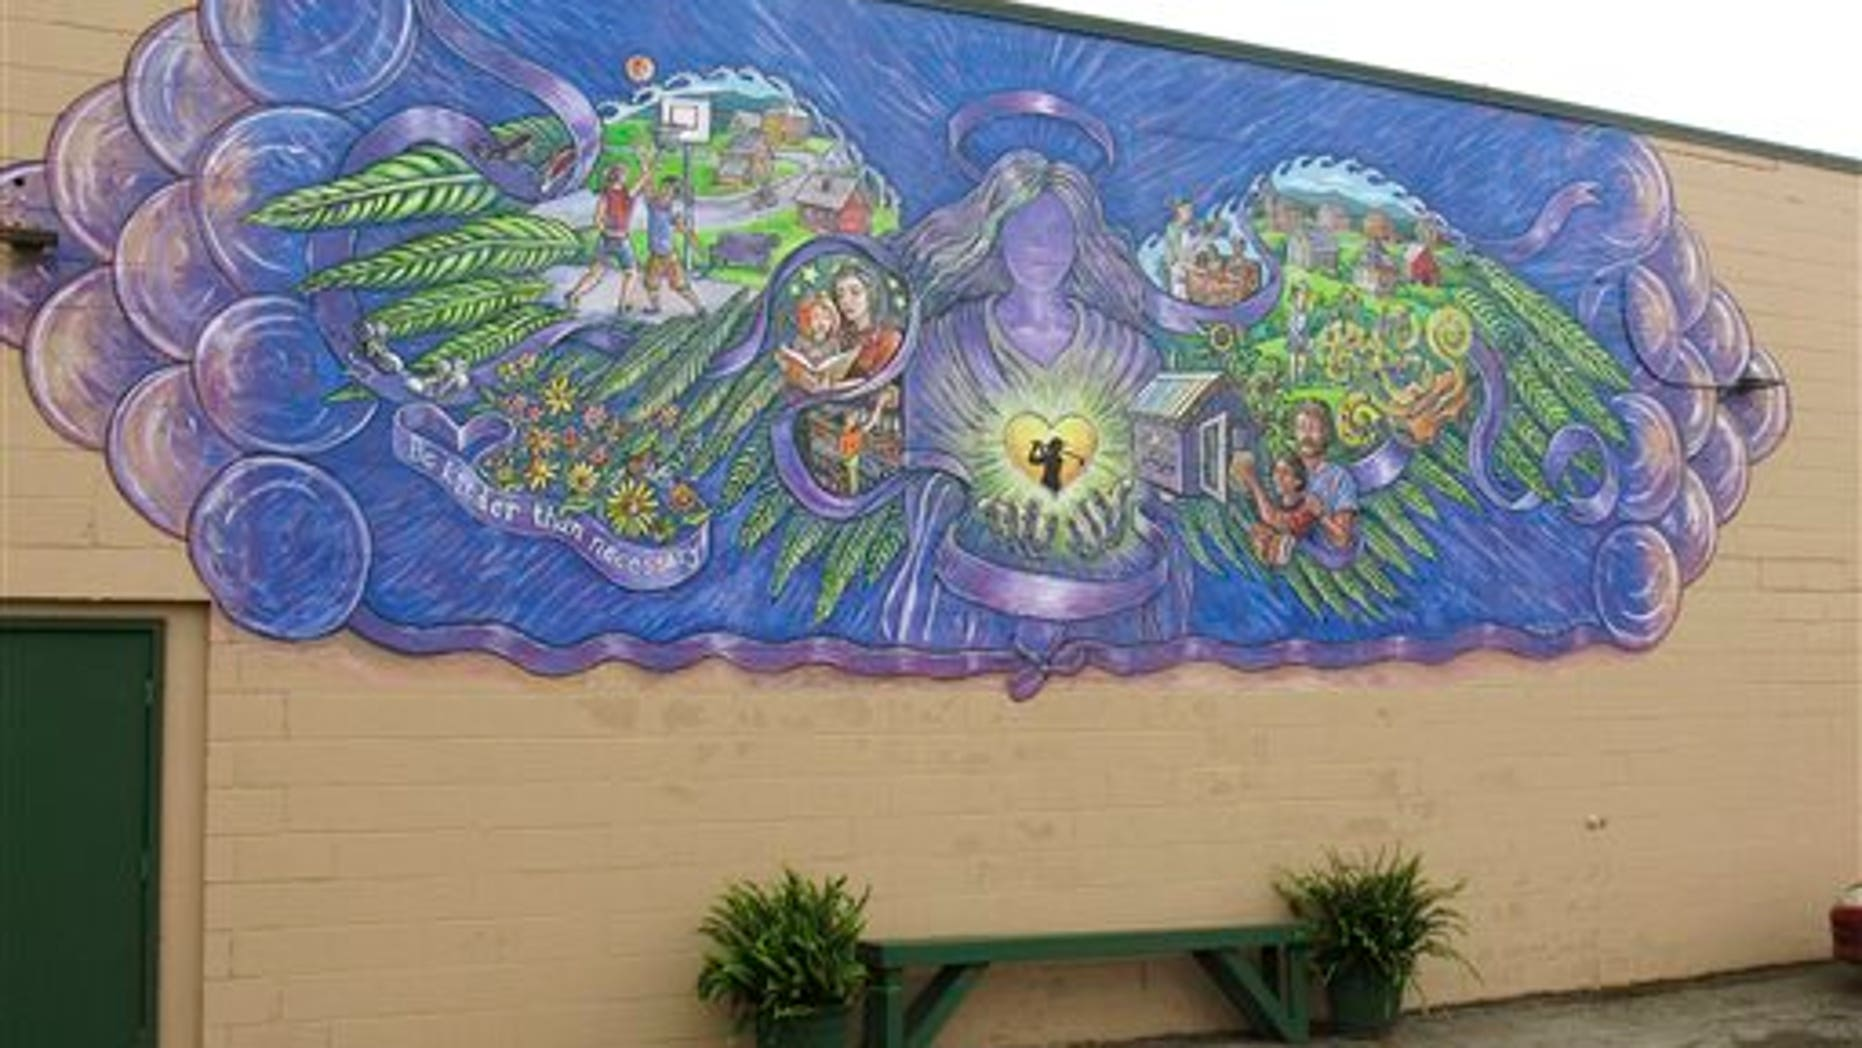 In this Oct. 1, 2015 photo, a mural covers the wall of a store in Rutland, Vt., commemorating the life of 17-year-old Carly Ferro, a star athlete, who was hit by a car and killed while leaving her job at the store. (AP Photo/Wilson Ring)